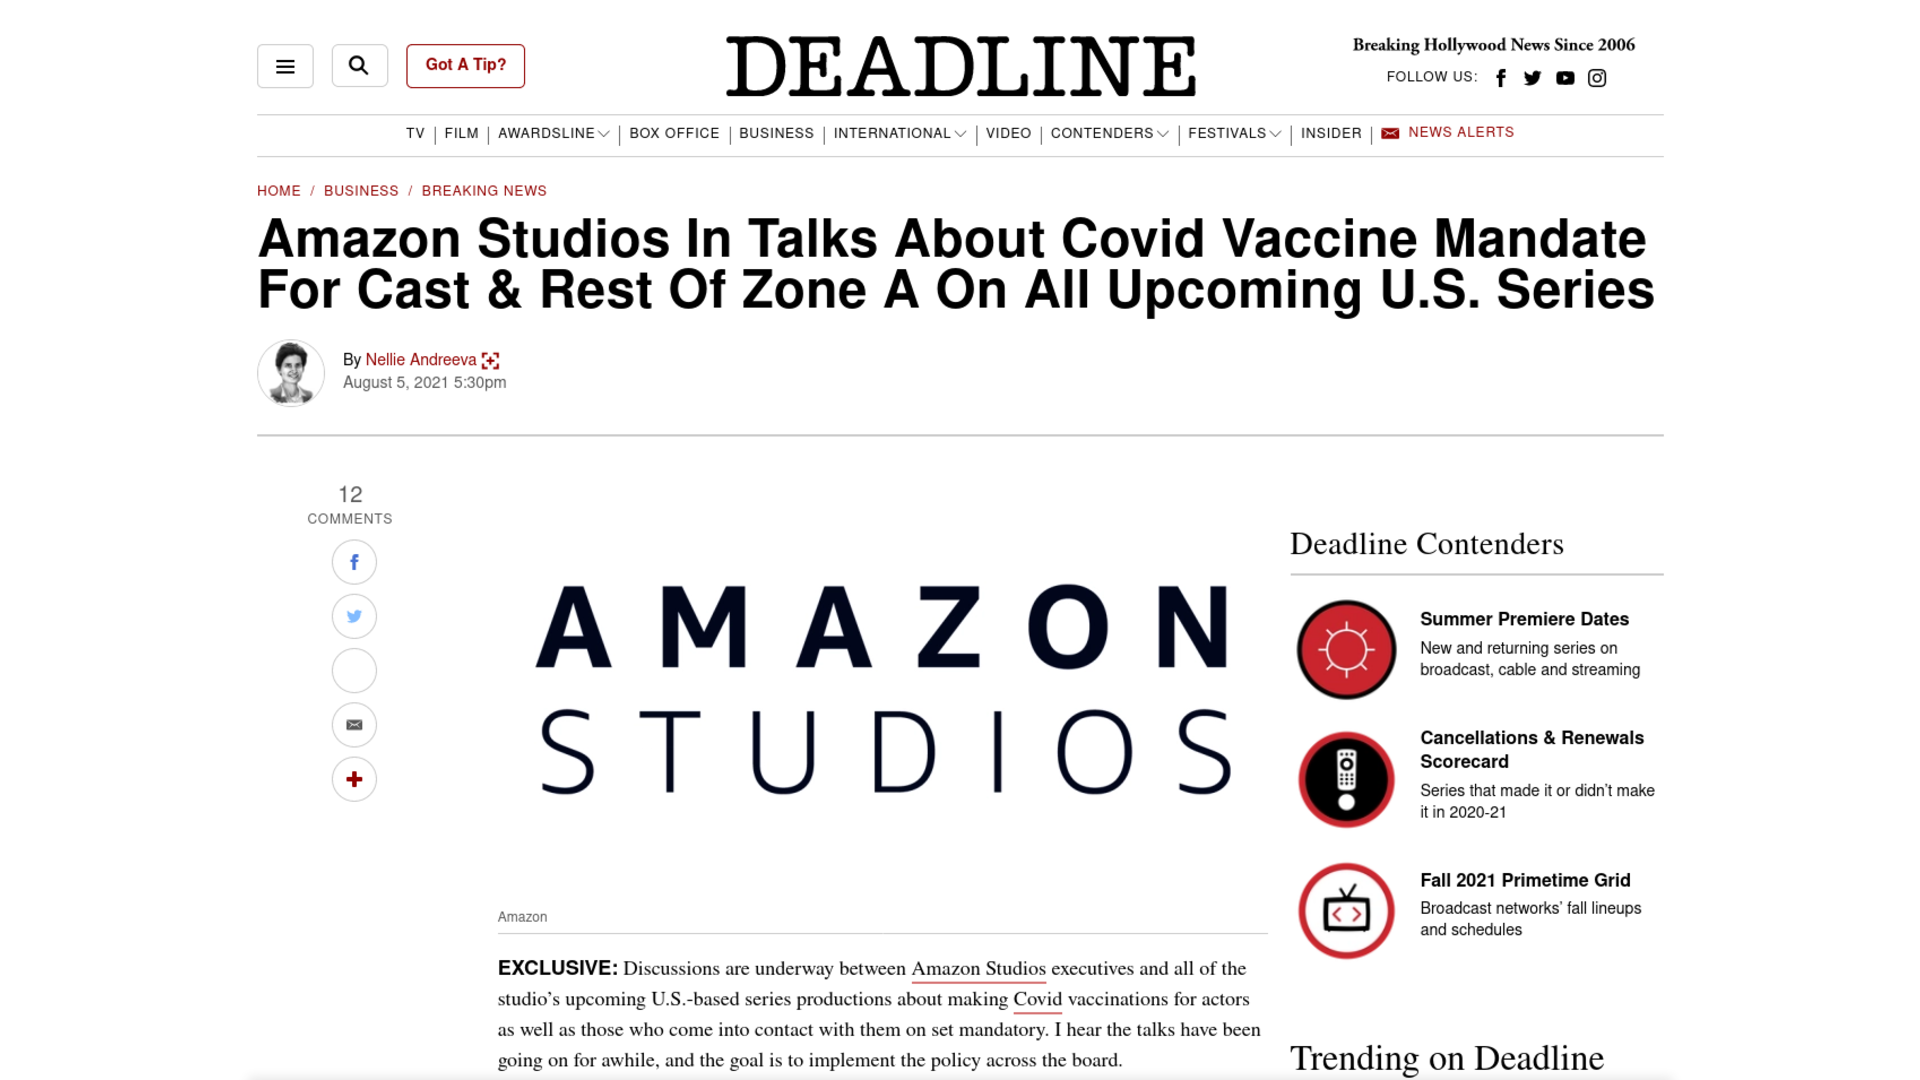 Fairness Rocks News Amazon Studios In Talks About Covid Vaccine Mandate For Cast & Rest Of Zone A On All Upcoming U.S. Series